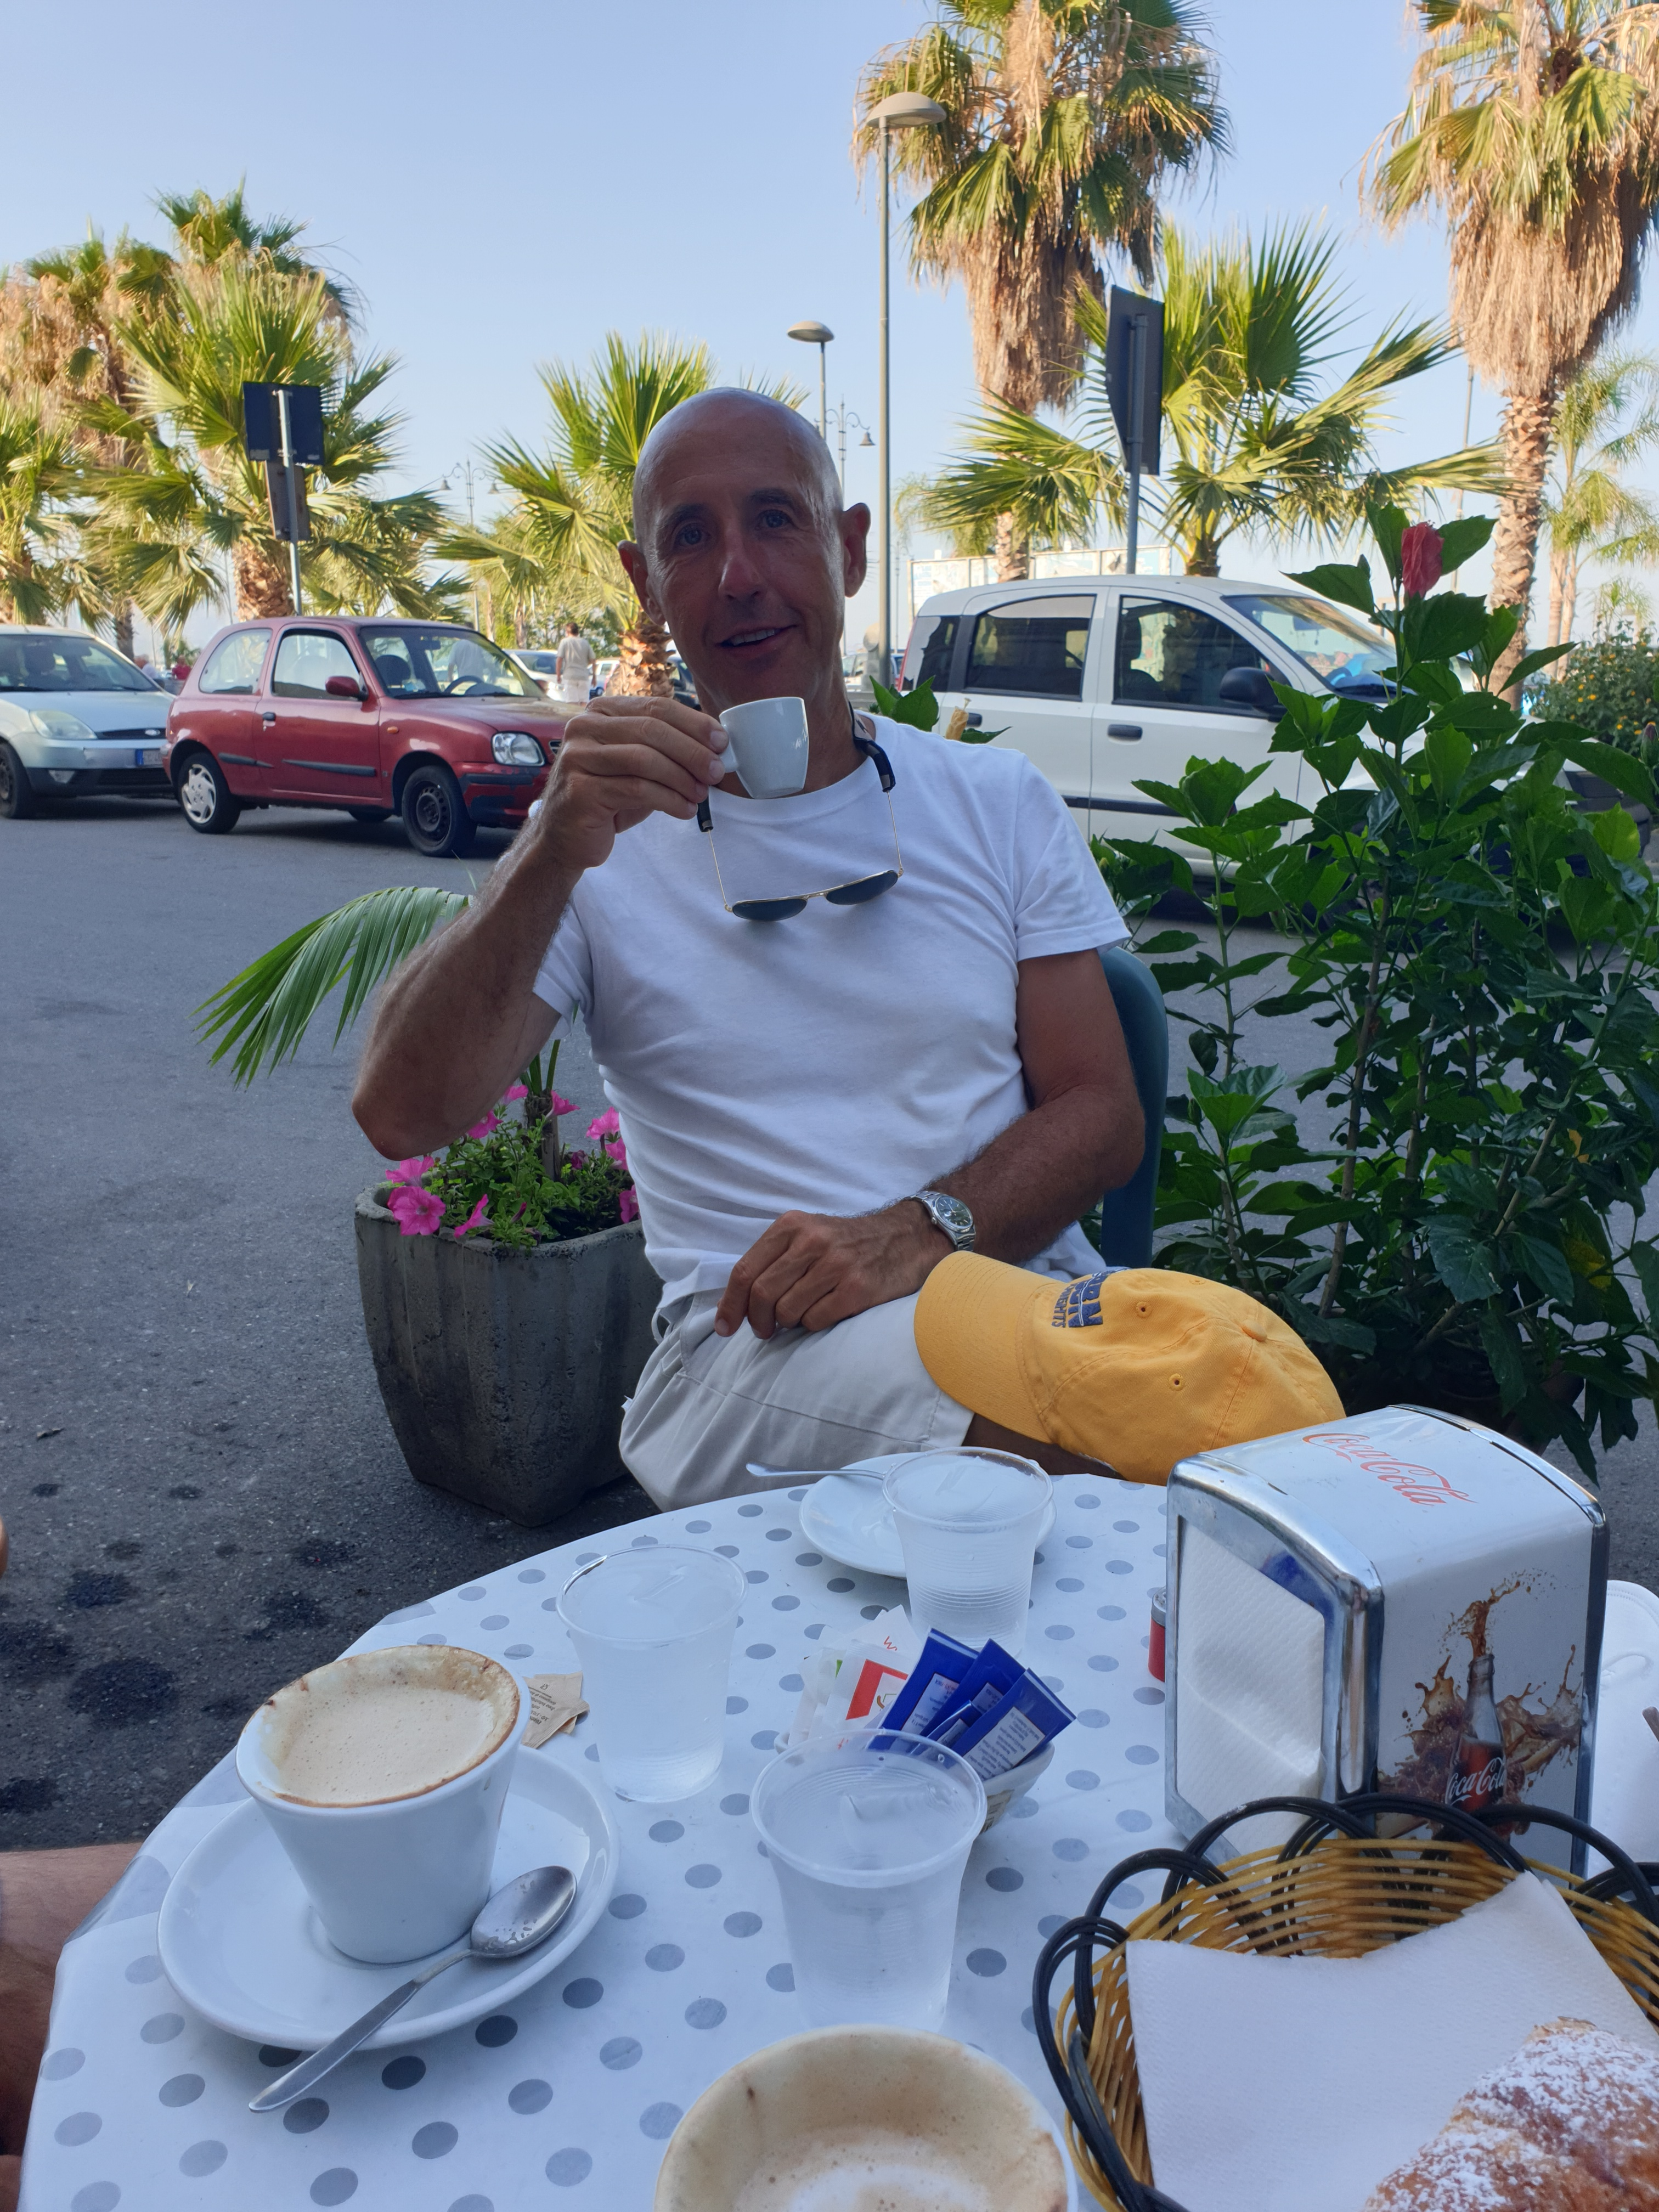 The full coffee experience in Sicily